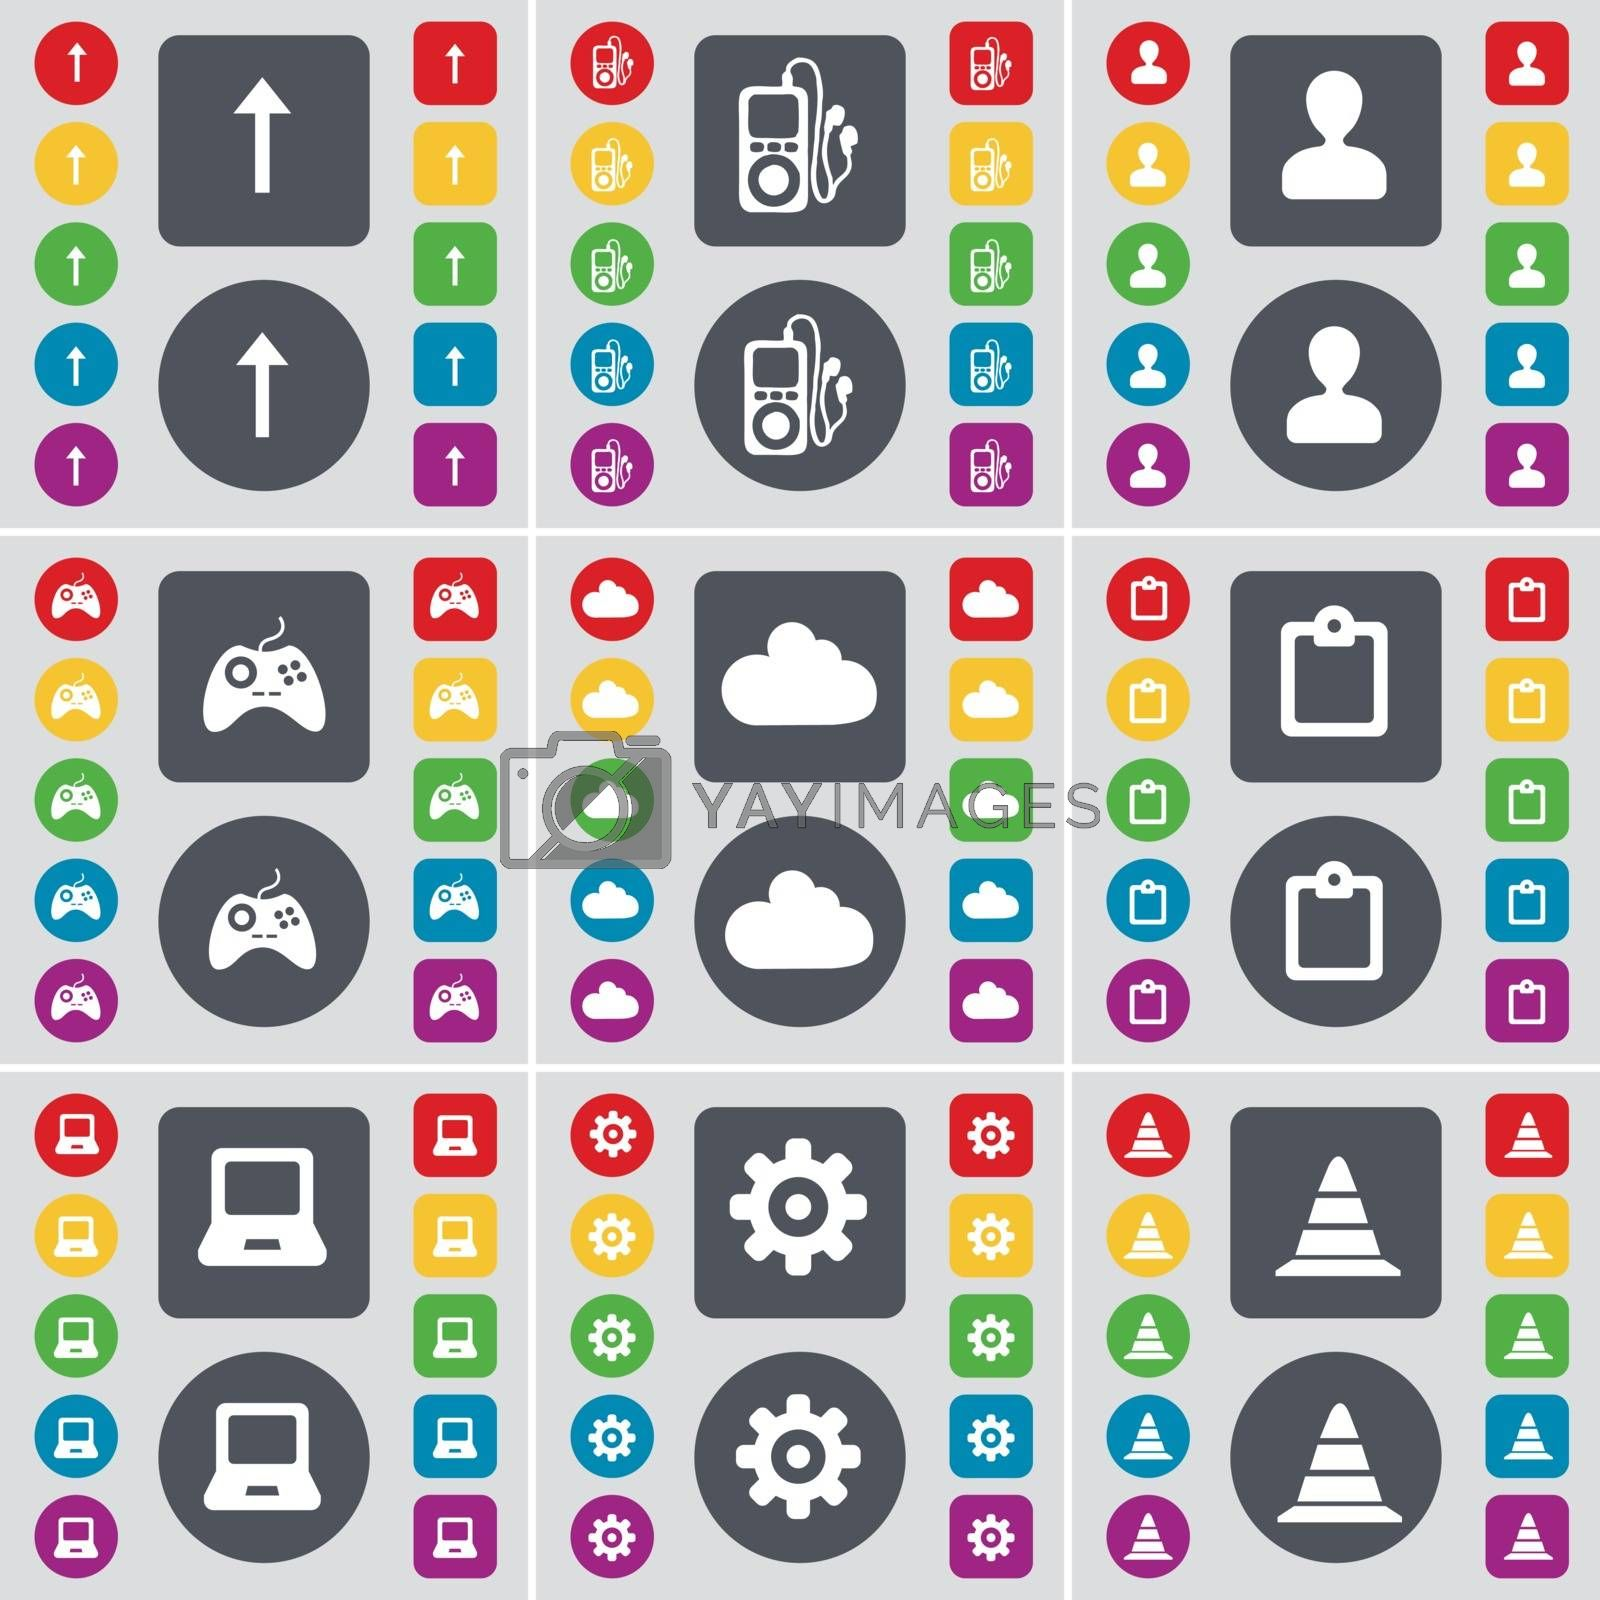 Royalty free image of Arrow up, MP3 player, Avatar, Gamepad, Cloud, Survey, Laptop, Gear, Cone icon symbol. A large set of flat, colored buttons for your design. Vector by serhii_lohvyniuk